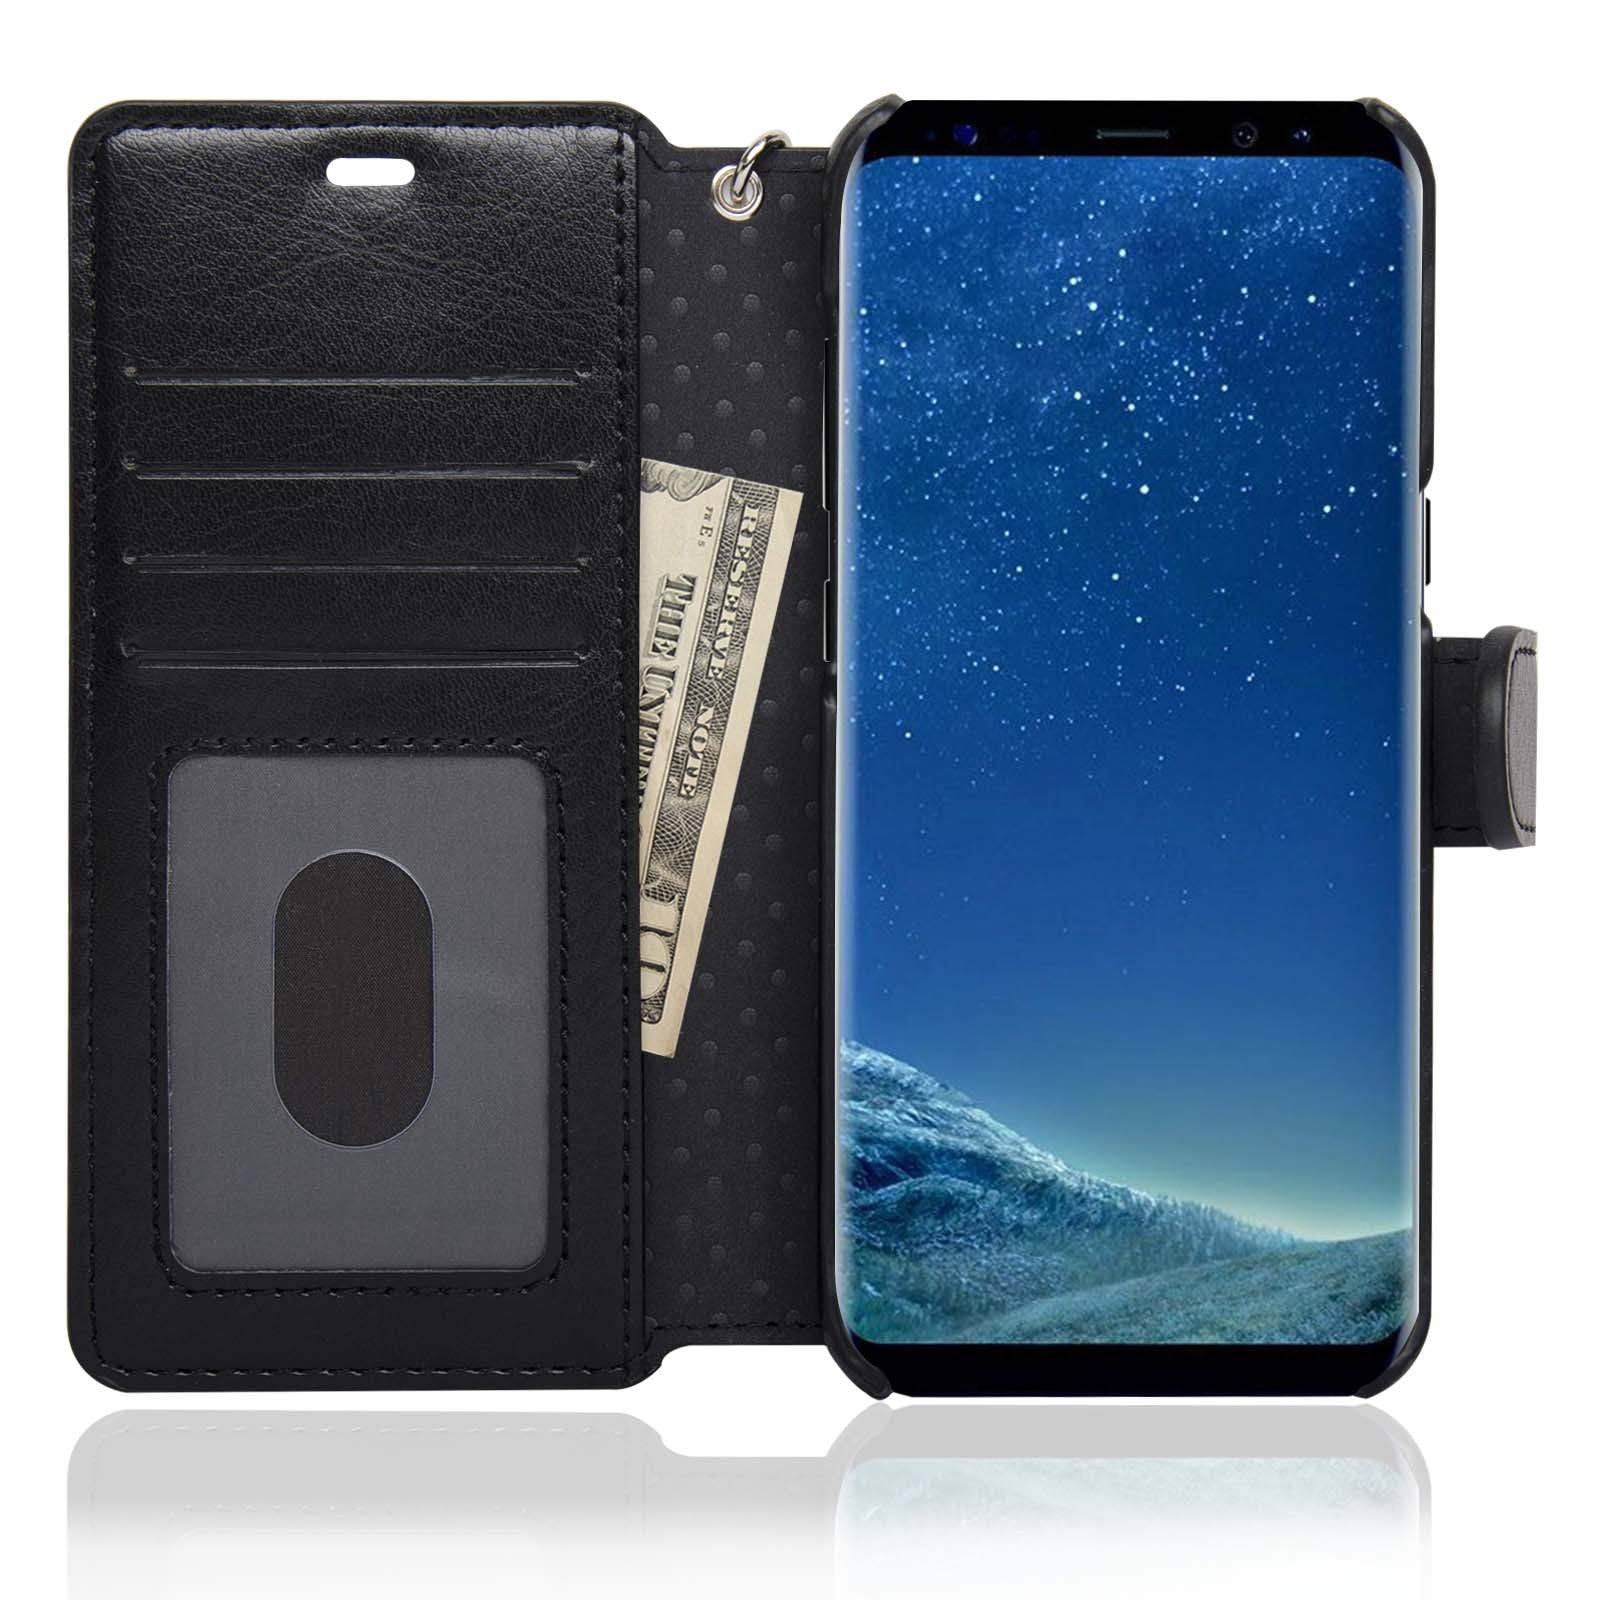 low priced 36962 77804 NAVOR Zevo Samsung Galaxy S8 Wallet Case Slim Fit Light Premium Flip Cover  with RFID Protection